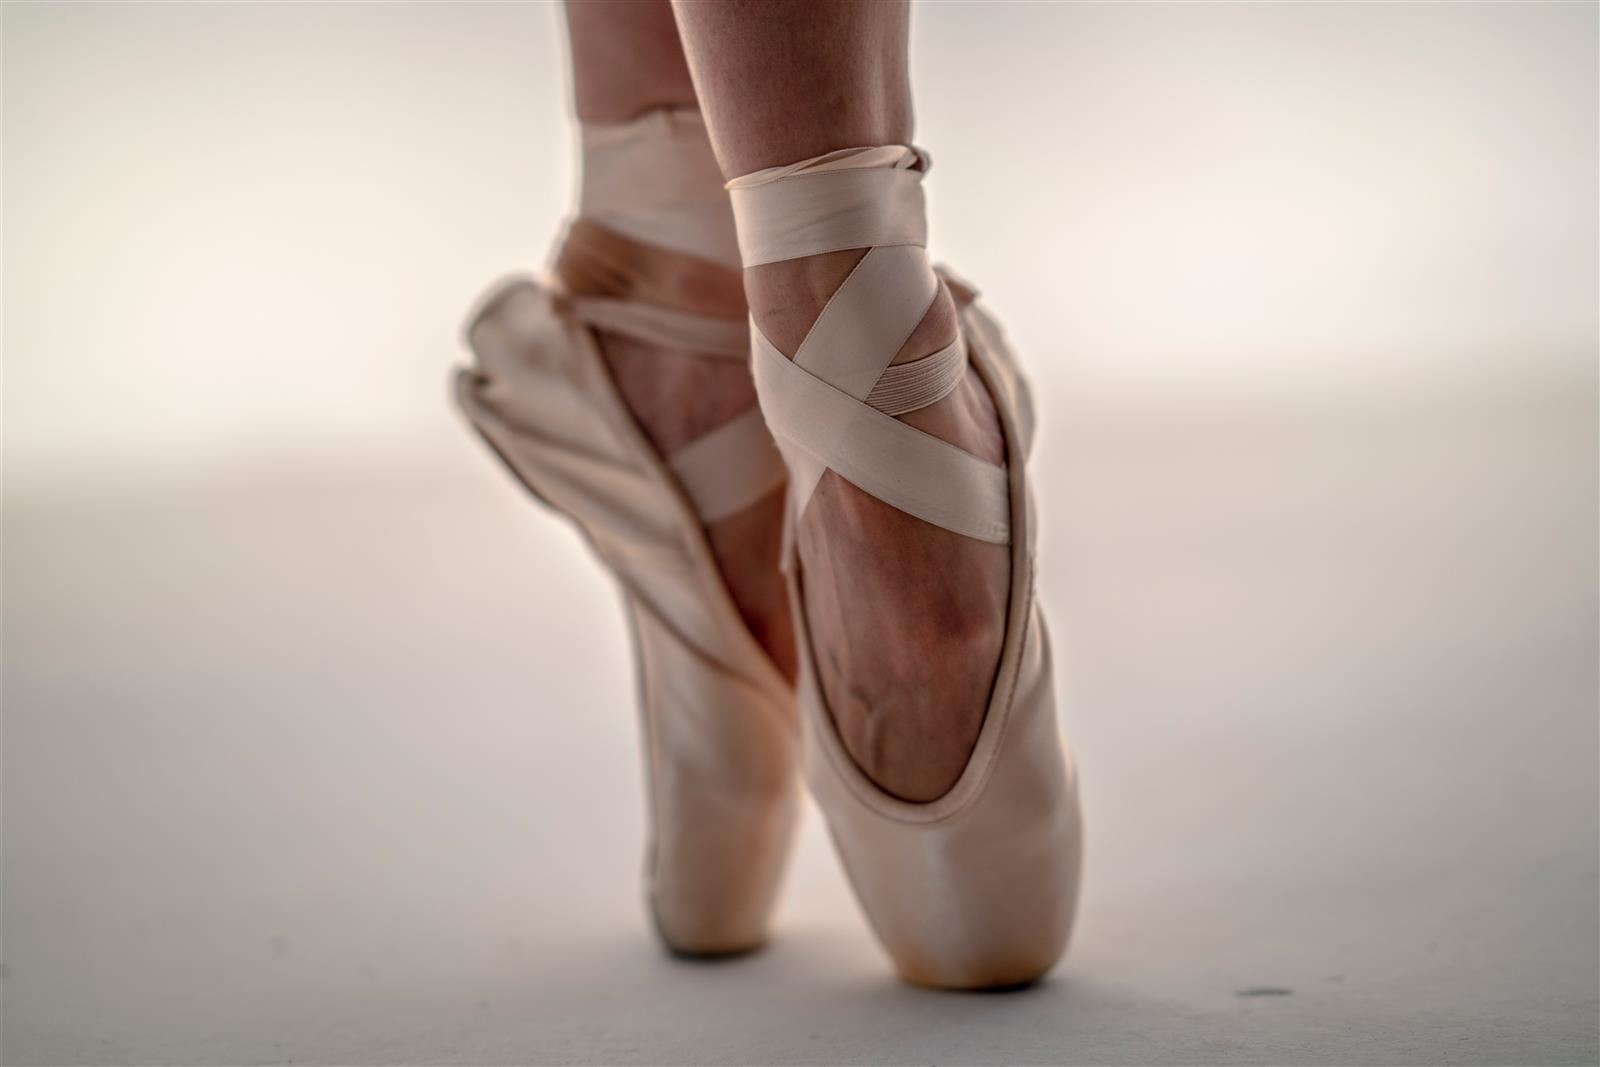 Information about after-school clubs (Ballet)